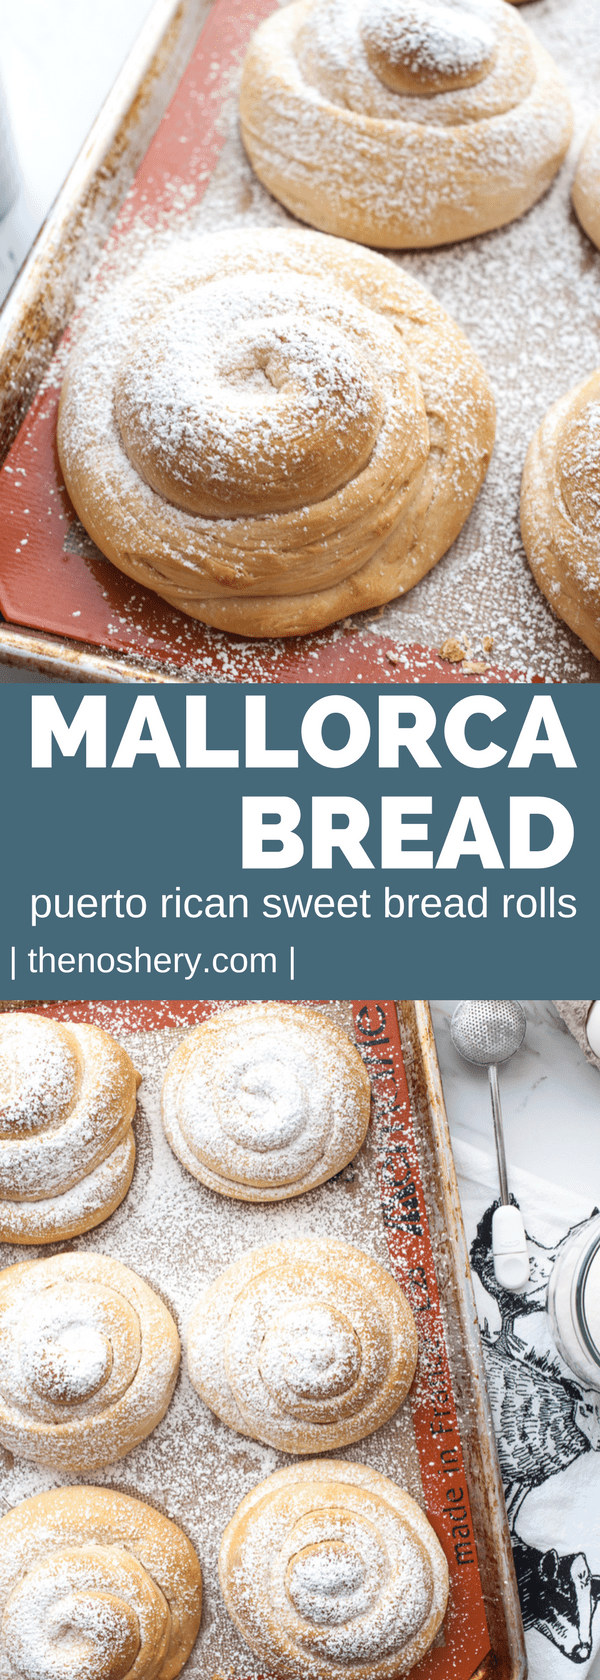 Mallorca Bread: Puerto Rican Sweet Bread Rolls (Pan De Mallorca) | Mallorca bread is Puerto Rican sweet rolls. They are plump, fluffy, buttery rolls dusted with powdered sugar. The perfect compliment to a cup of coffee. | The Noshery